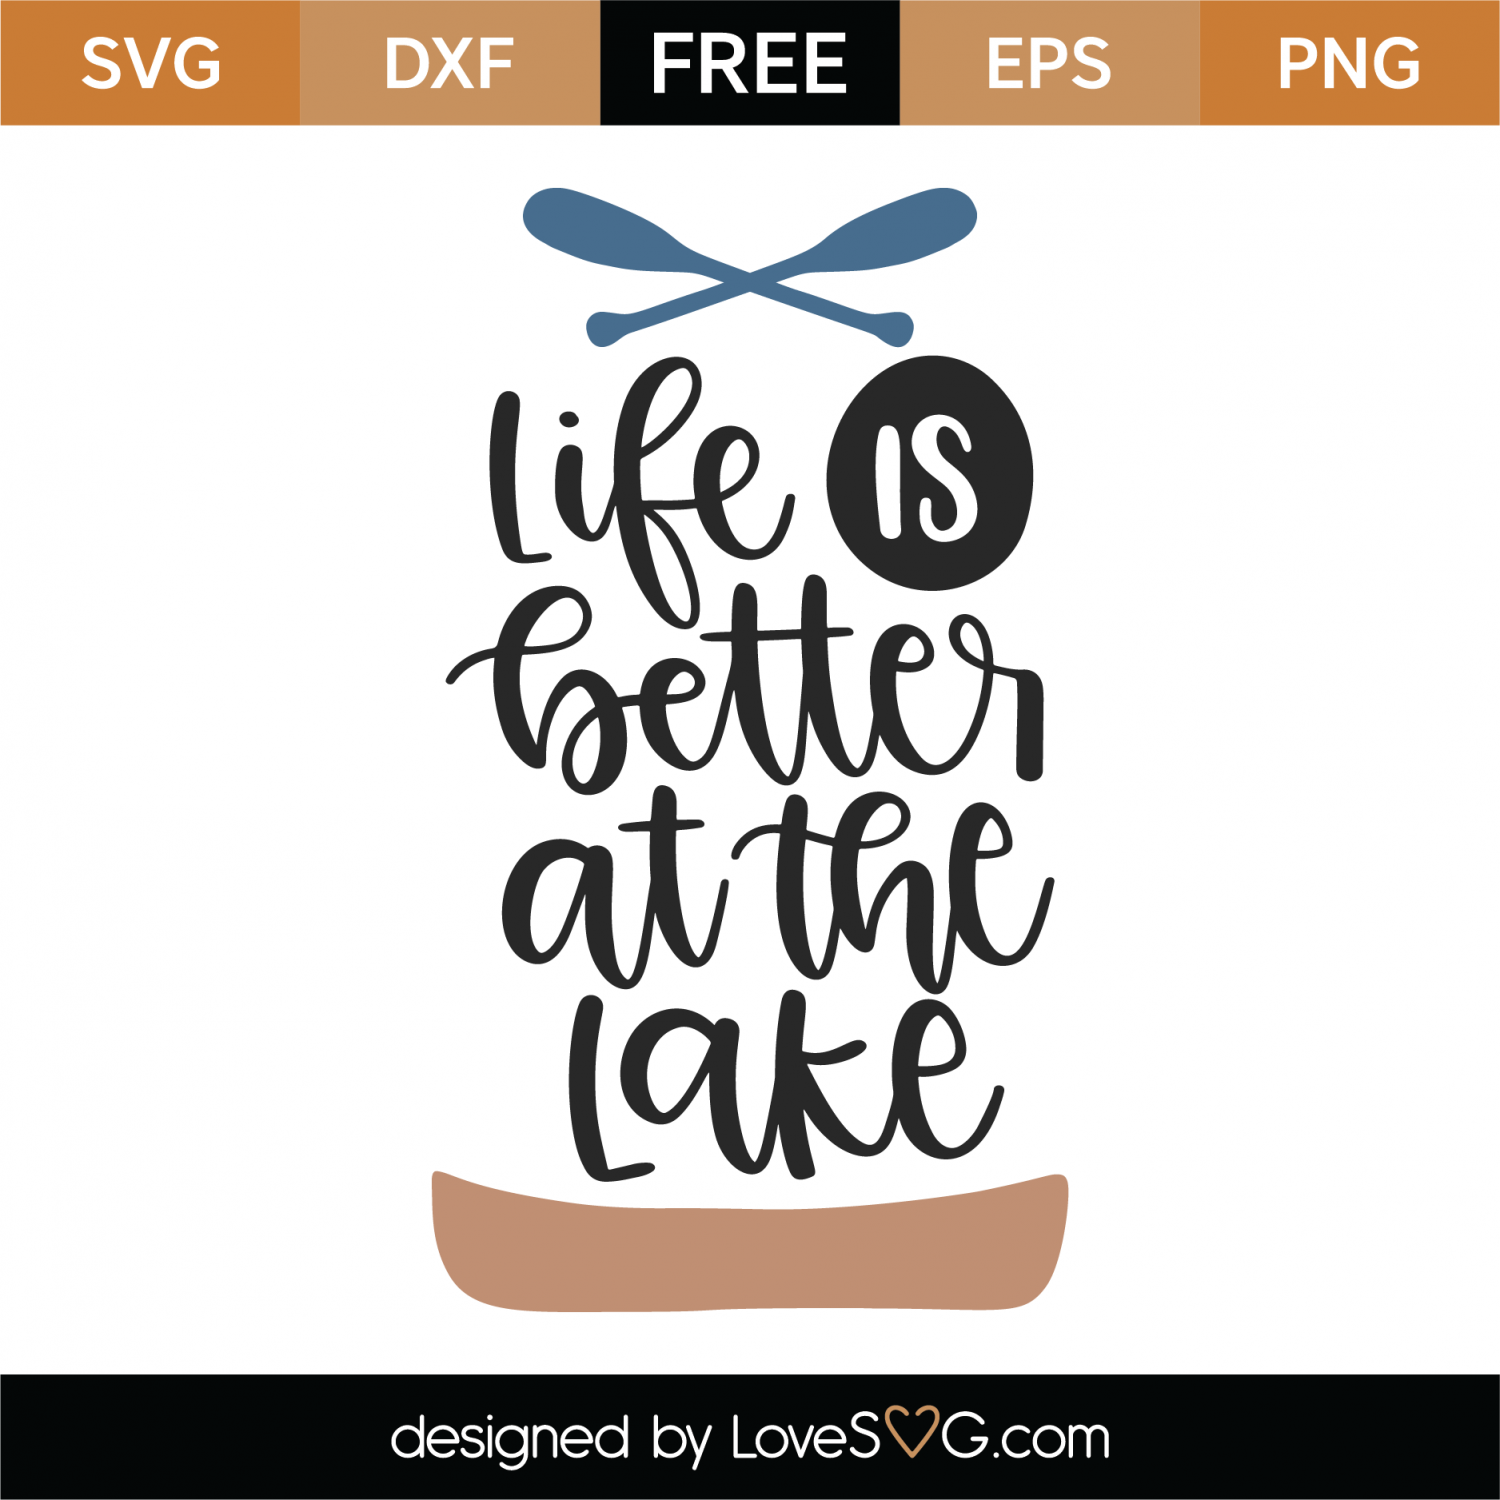 Free Life Is Better At The Lake SVG Cut File | Lovesvg com